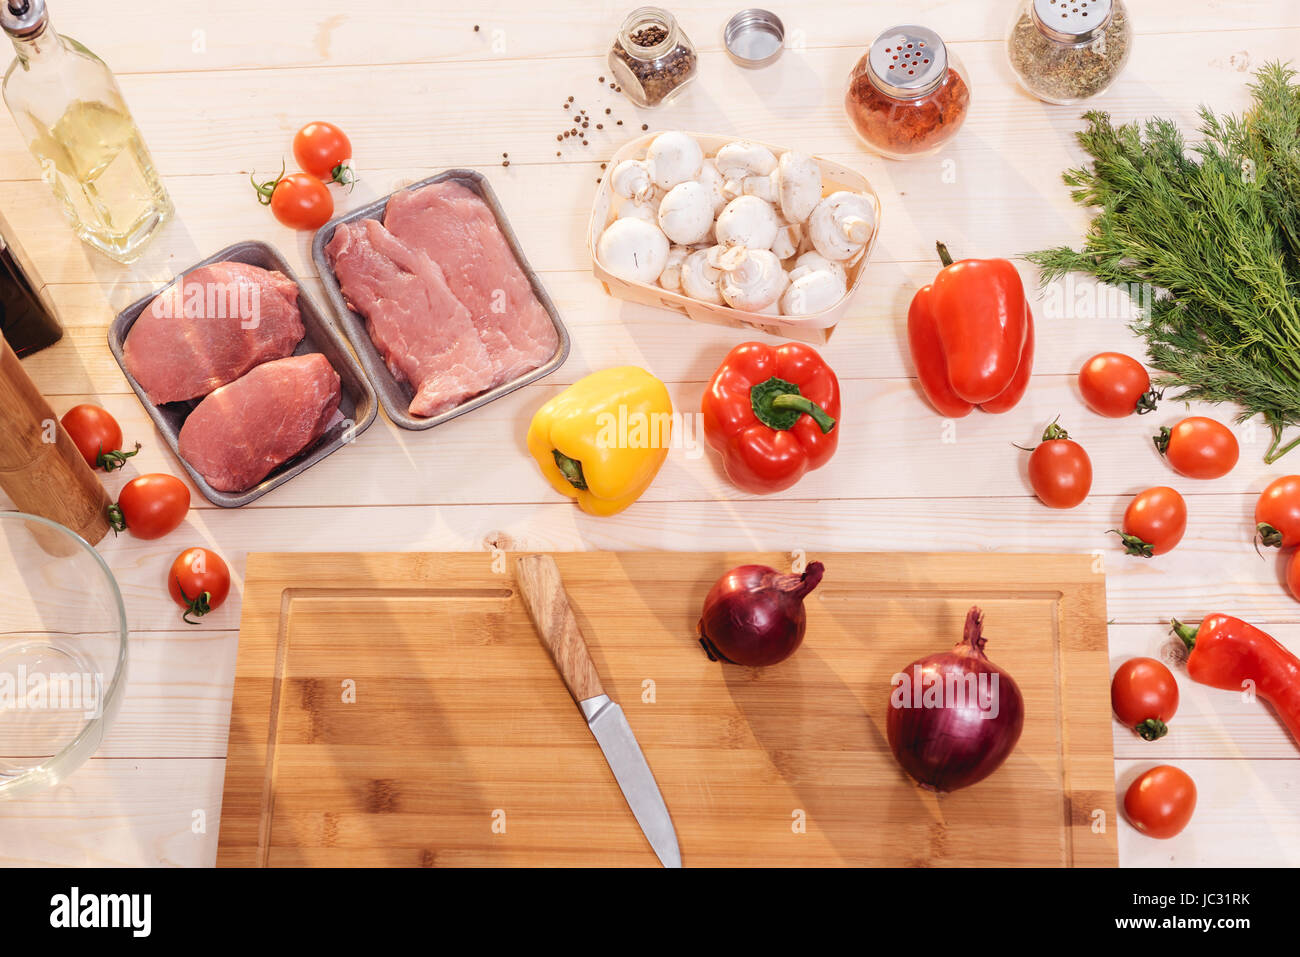 Close-up view of fresh vegetables and raw meat on wooden table - Stock Image